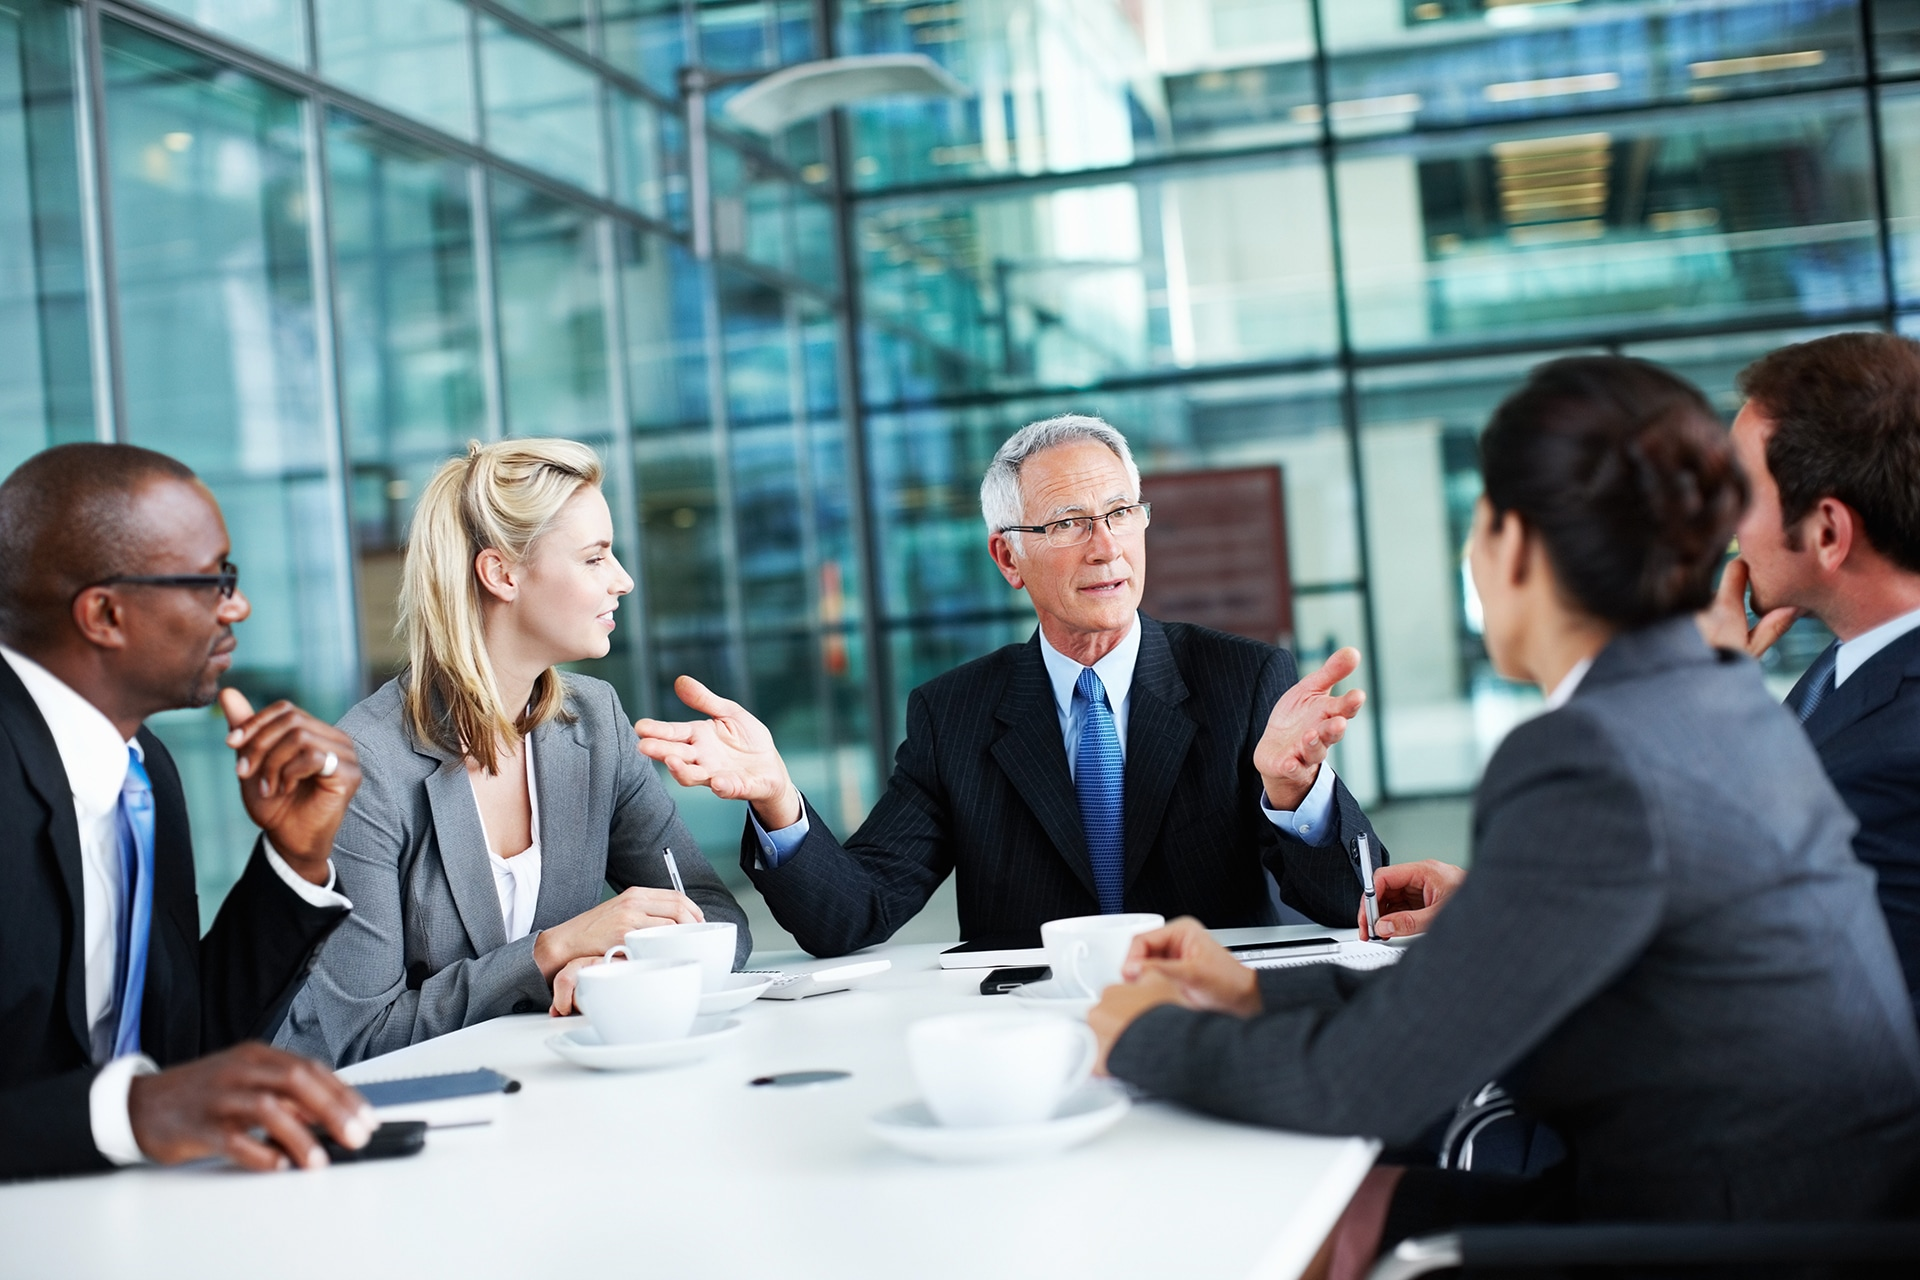 Leading Sustainably Ethical Boardroom